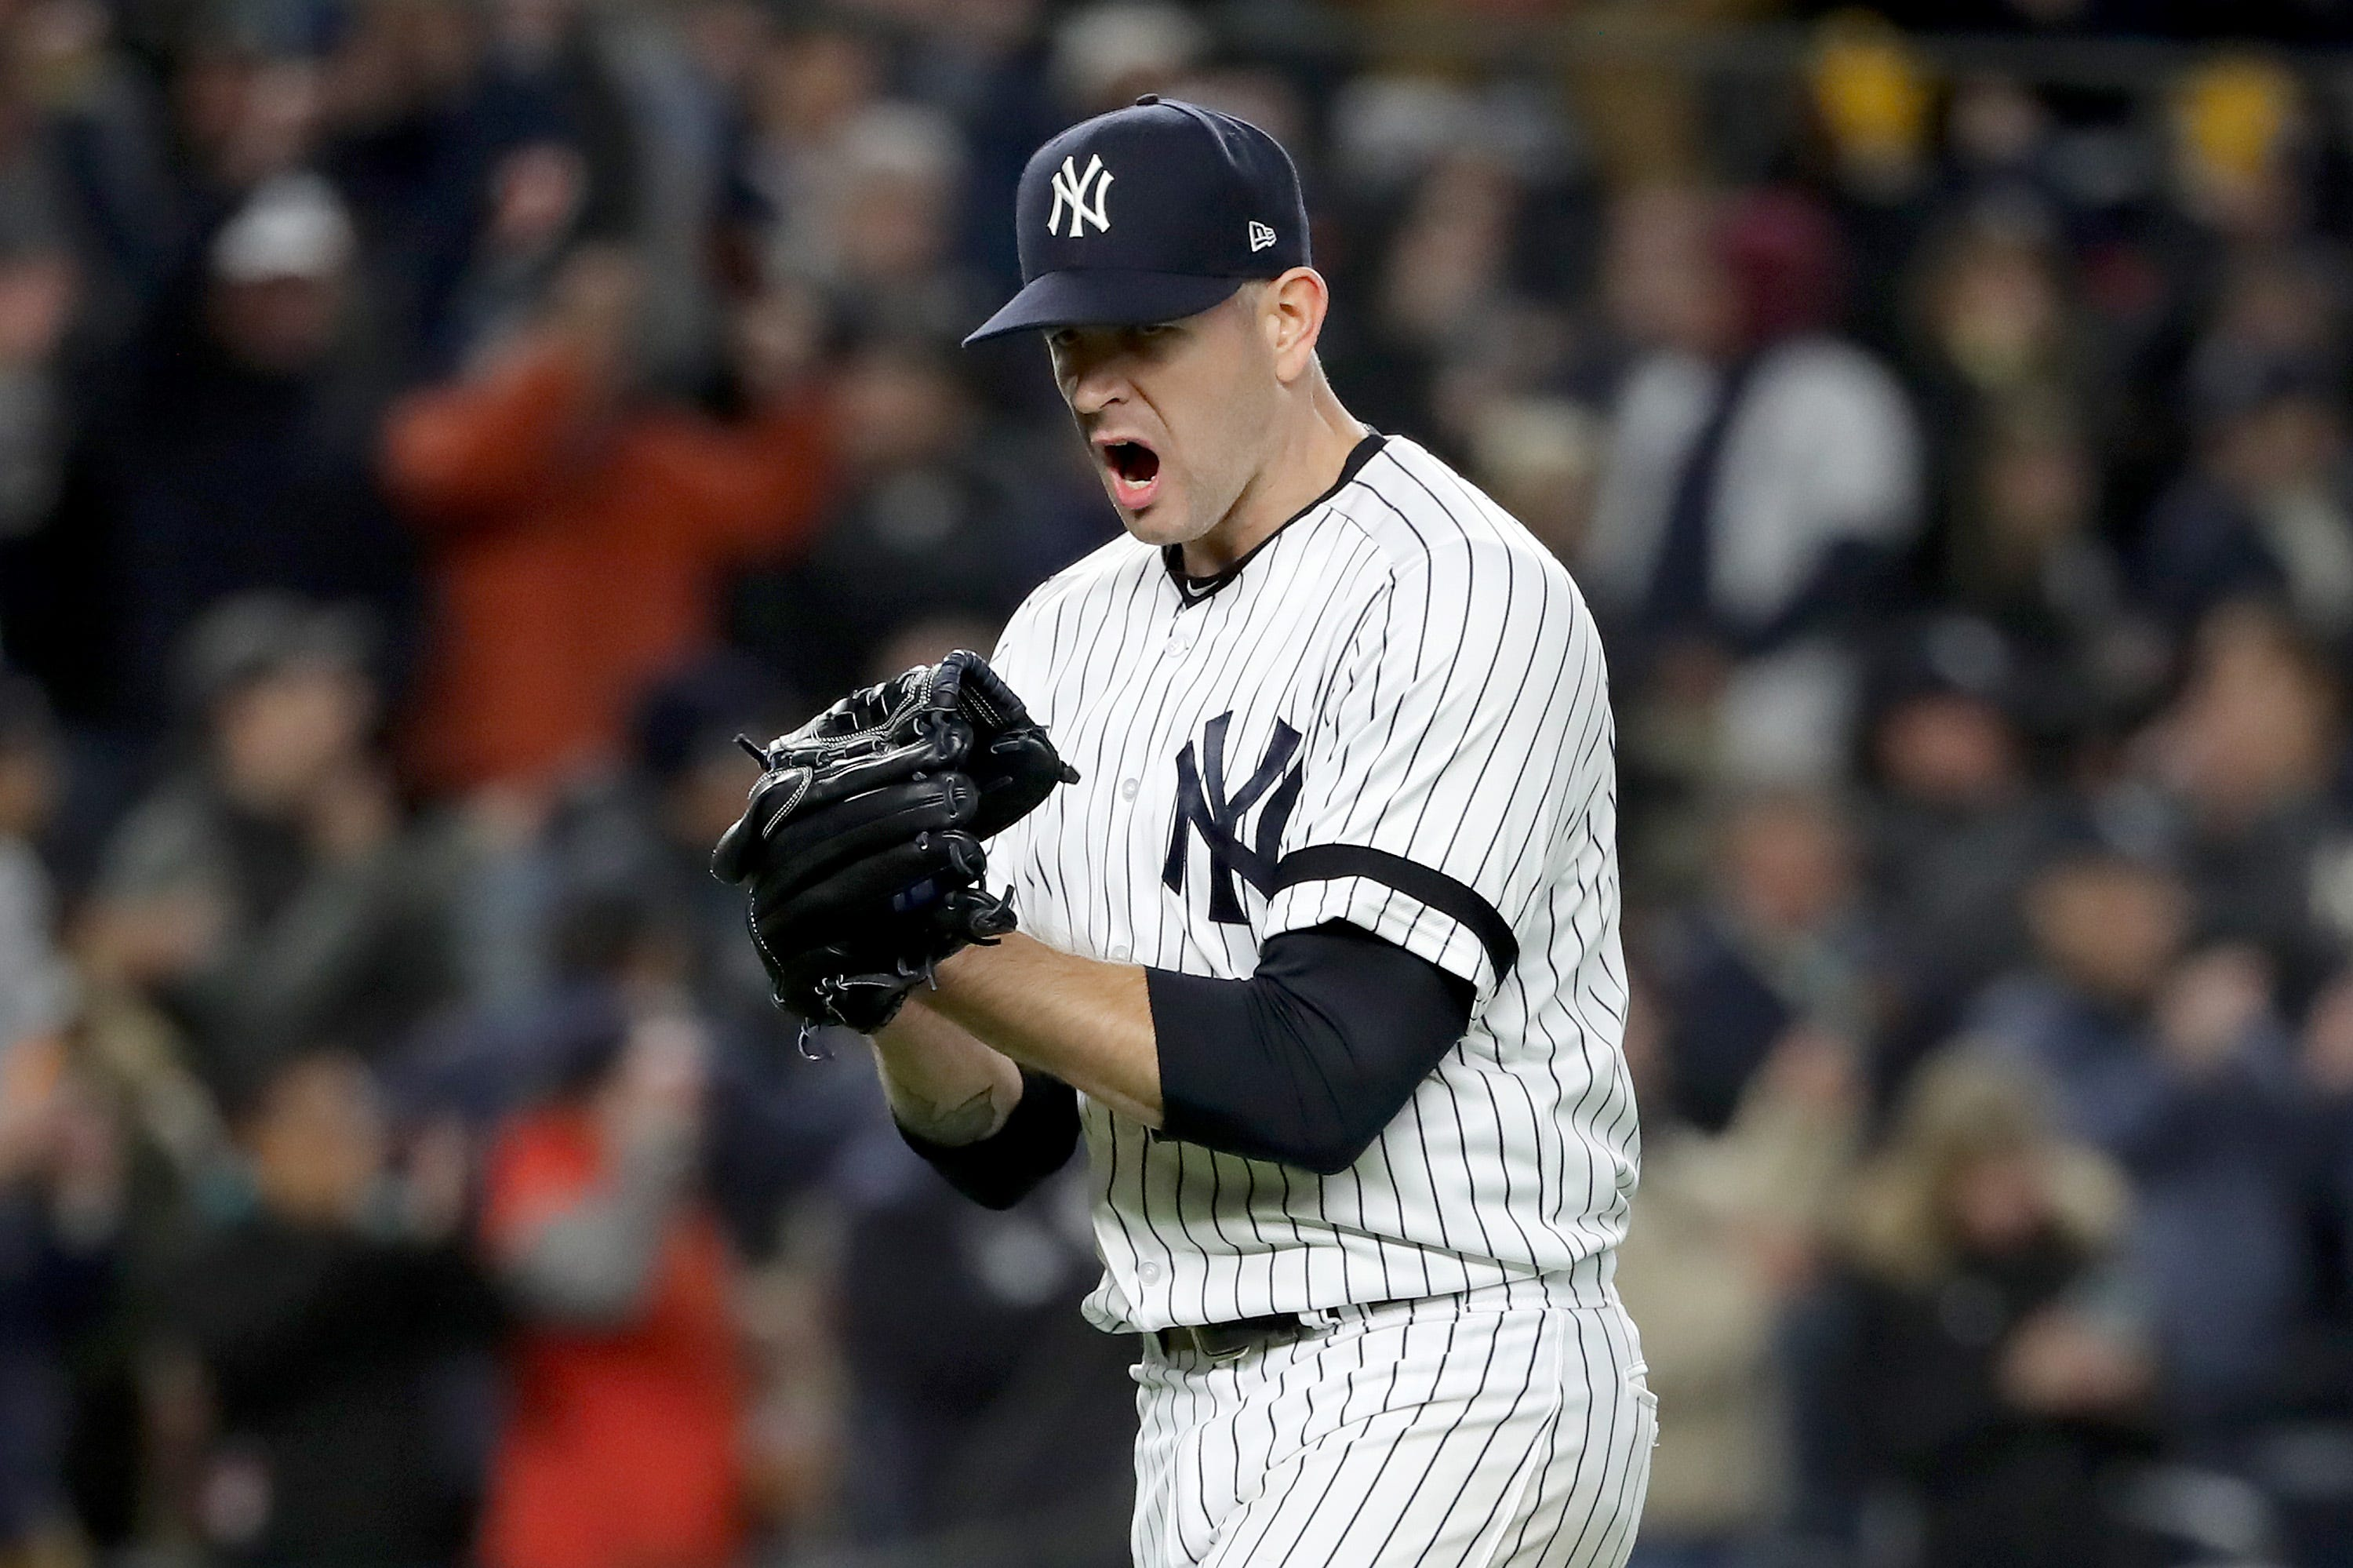 New York Yankees react to Game 5 win over Houston Astros